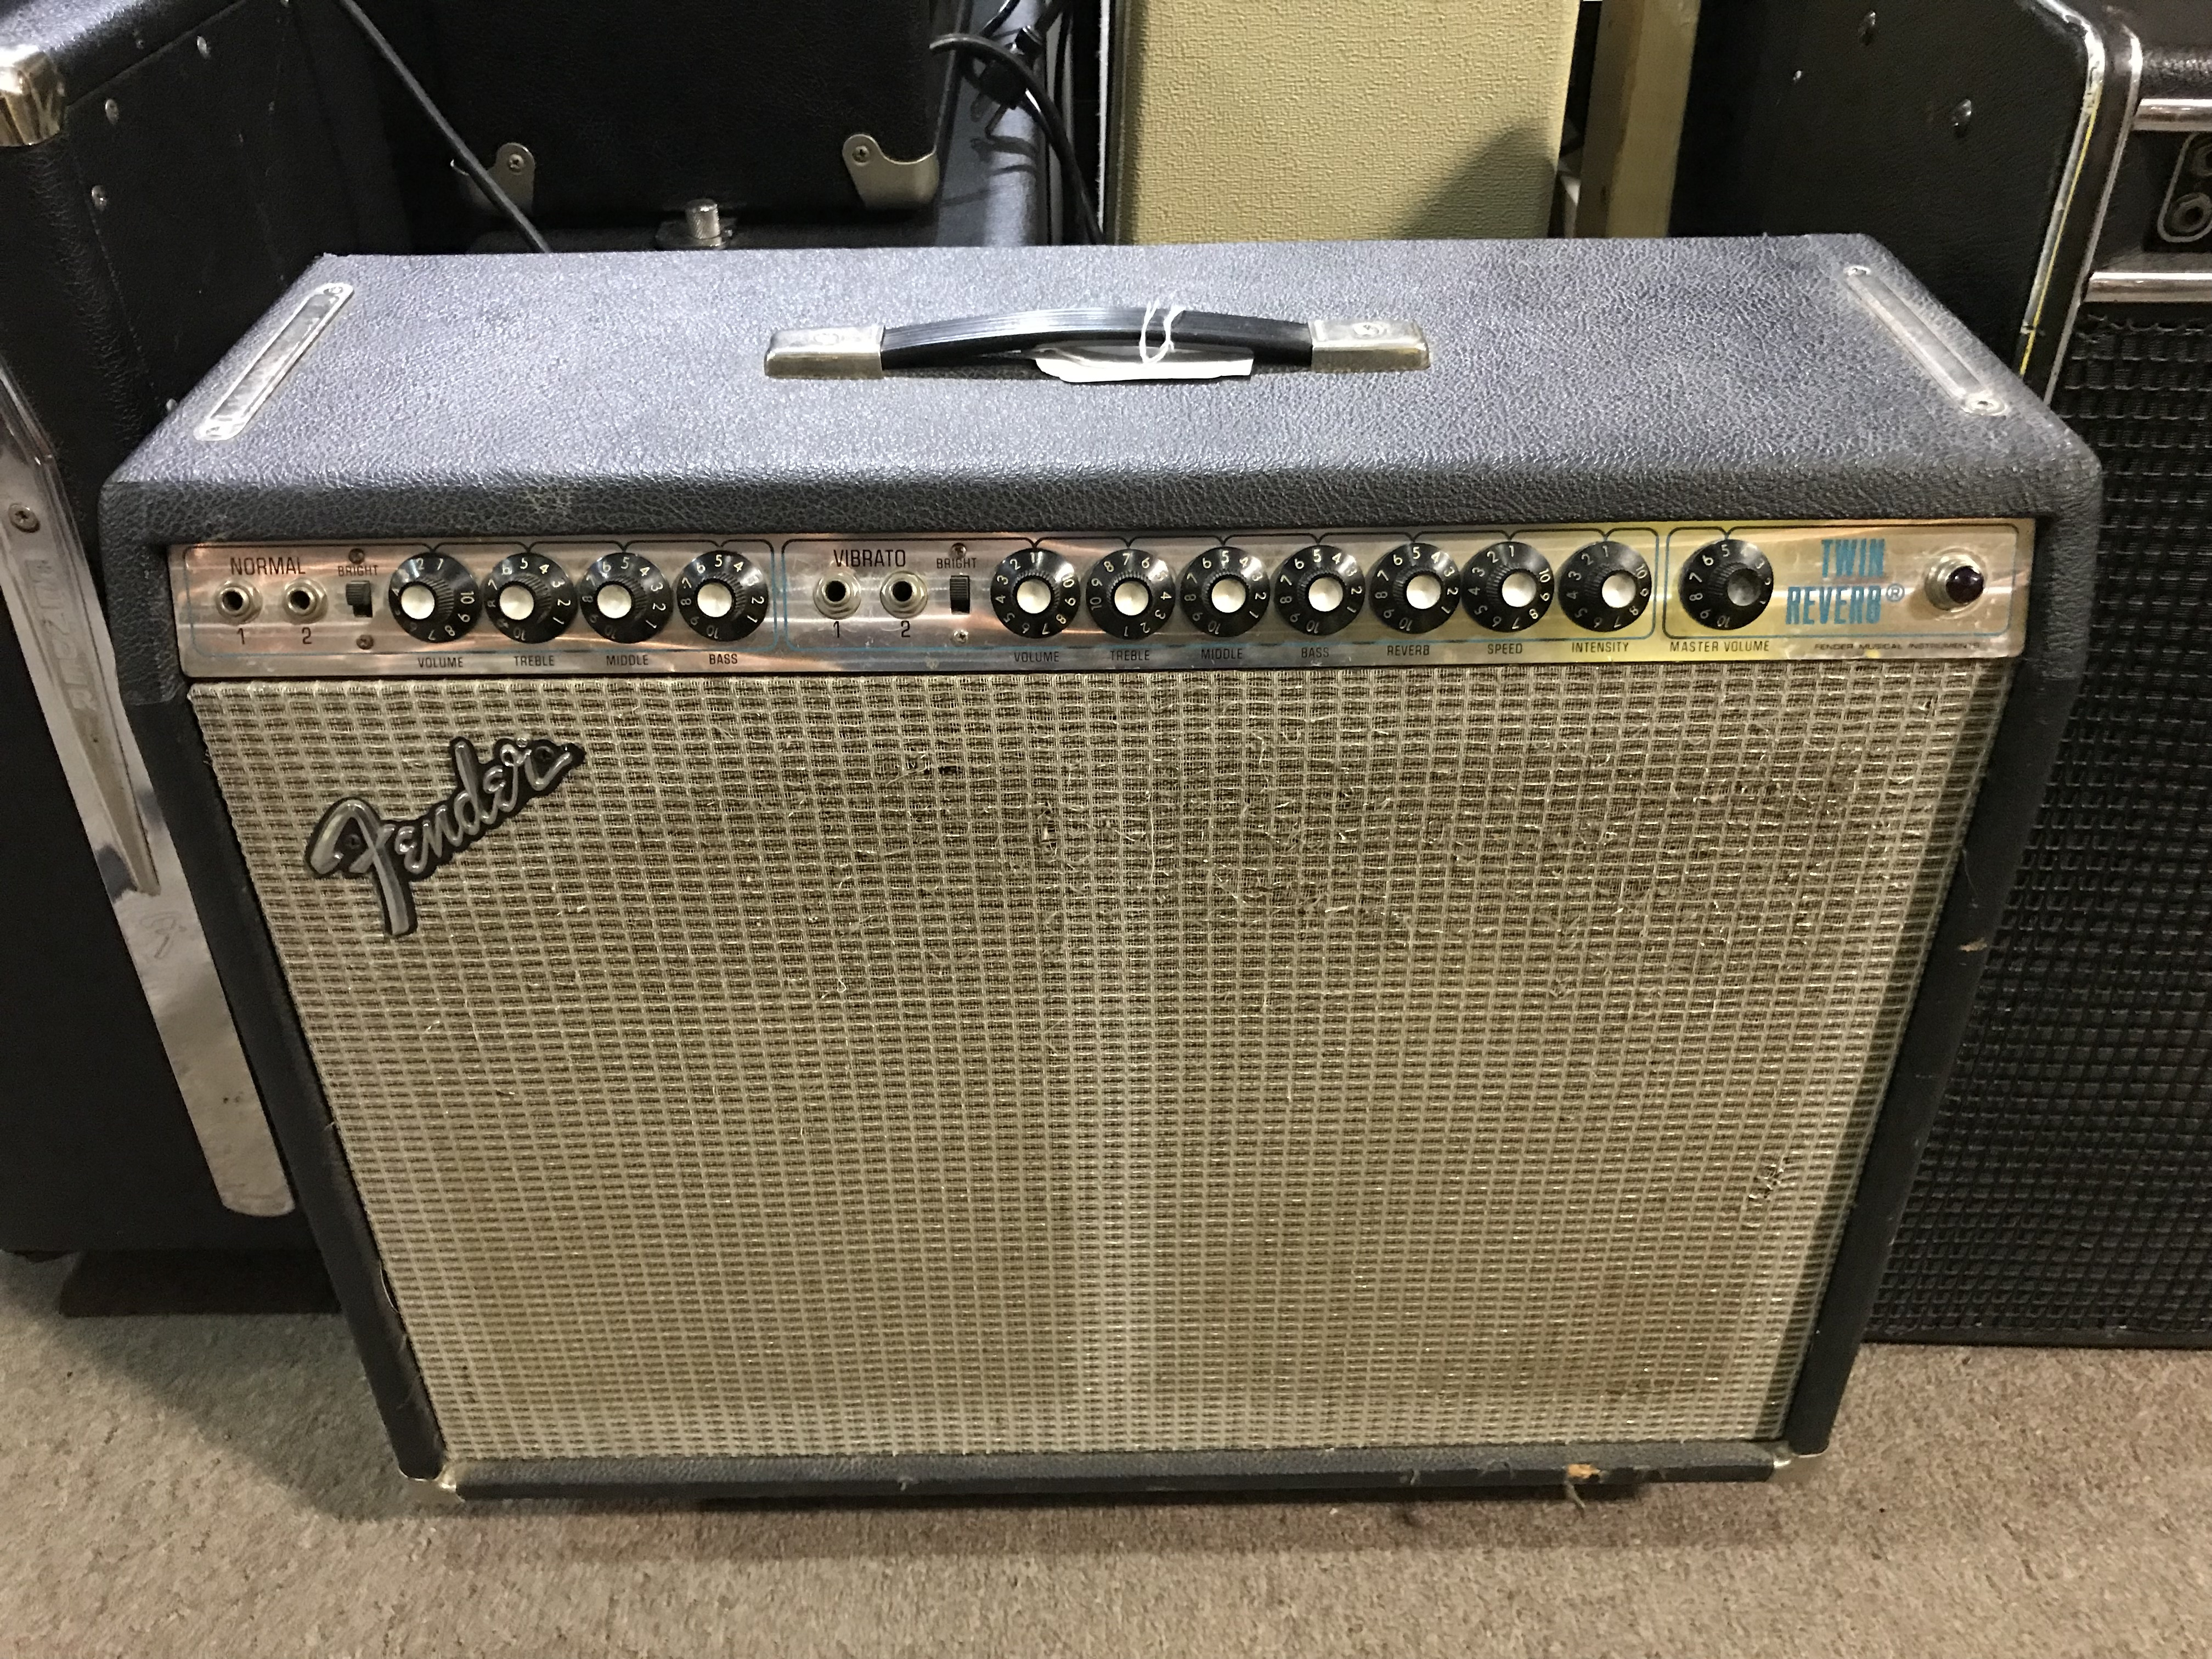 FENDER TWIN REVERB 1974 Silverface 100W 2X12 Tube Guitar Combo Amp LOCAL PICKUP